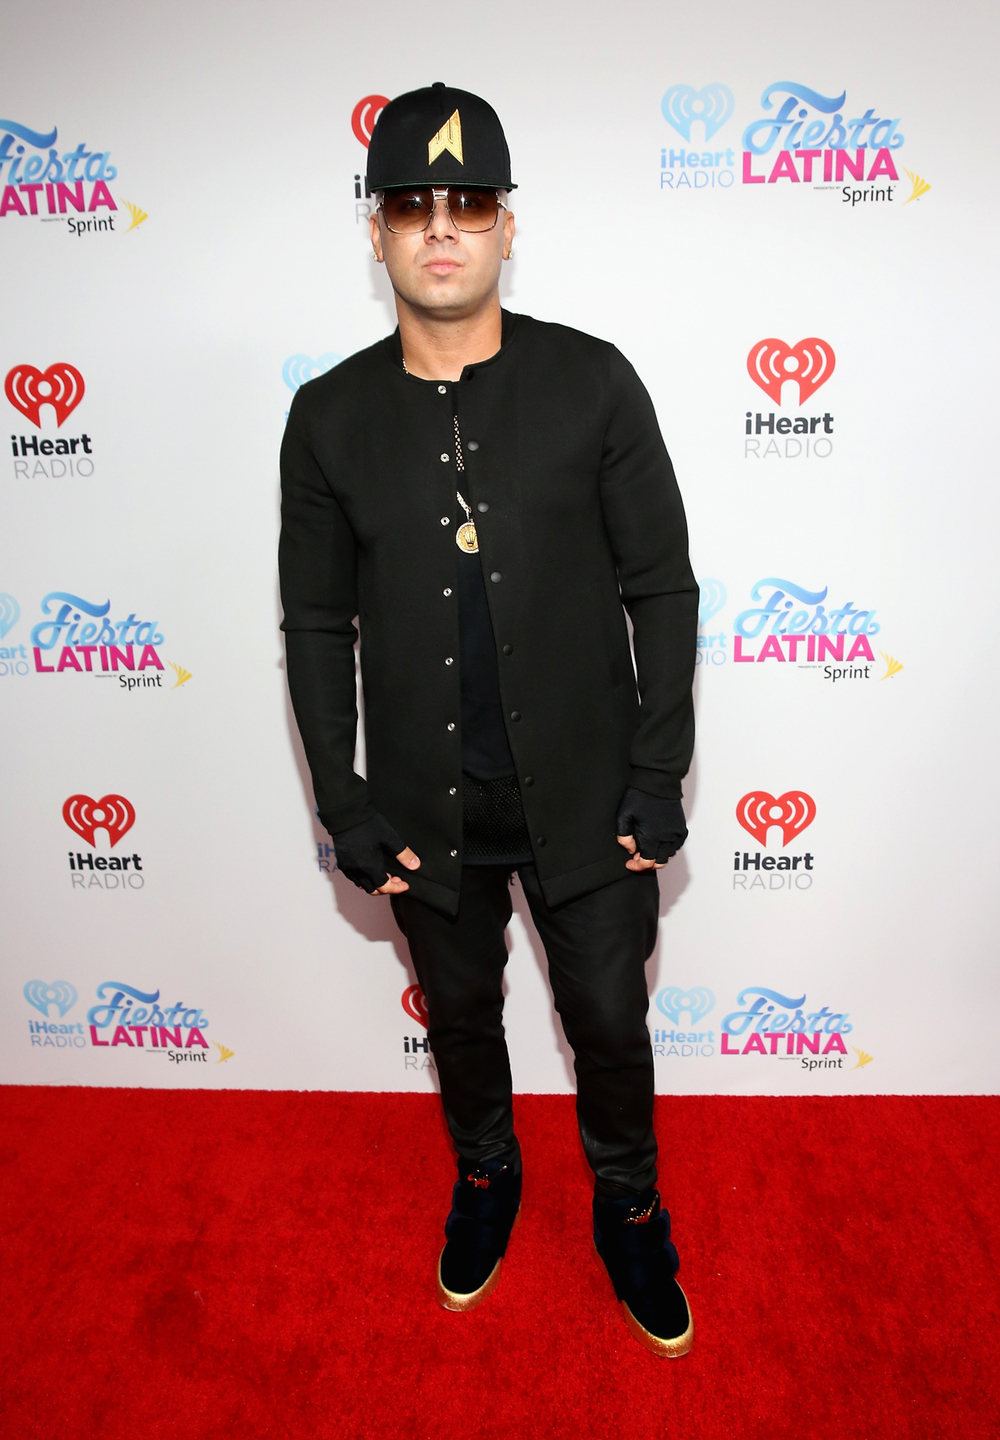 MIAMI, FL - NOVEMBER 07: Wisin attends iHeartRadio Fiesta Latina presented by Sprint at American Airlines Arena on November 7, 2015 in Miami, Florida.  (Photo by Aaron Davidson/Getty Images for iHeartMedia) *** Local Caption *** Wisin